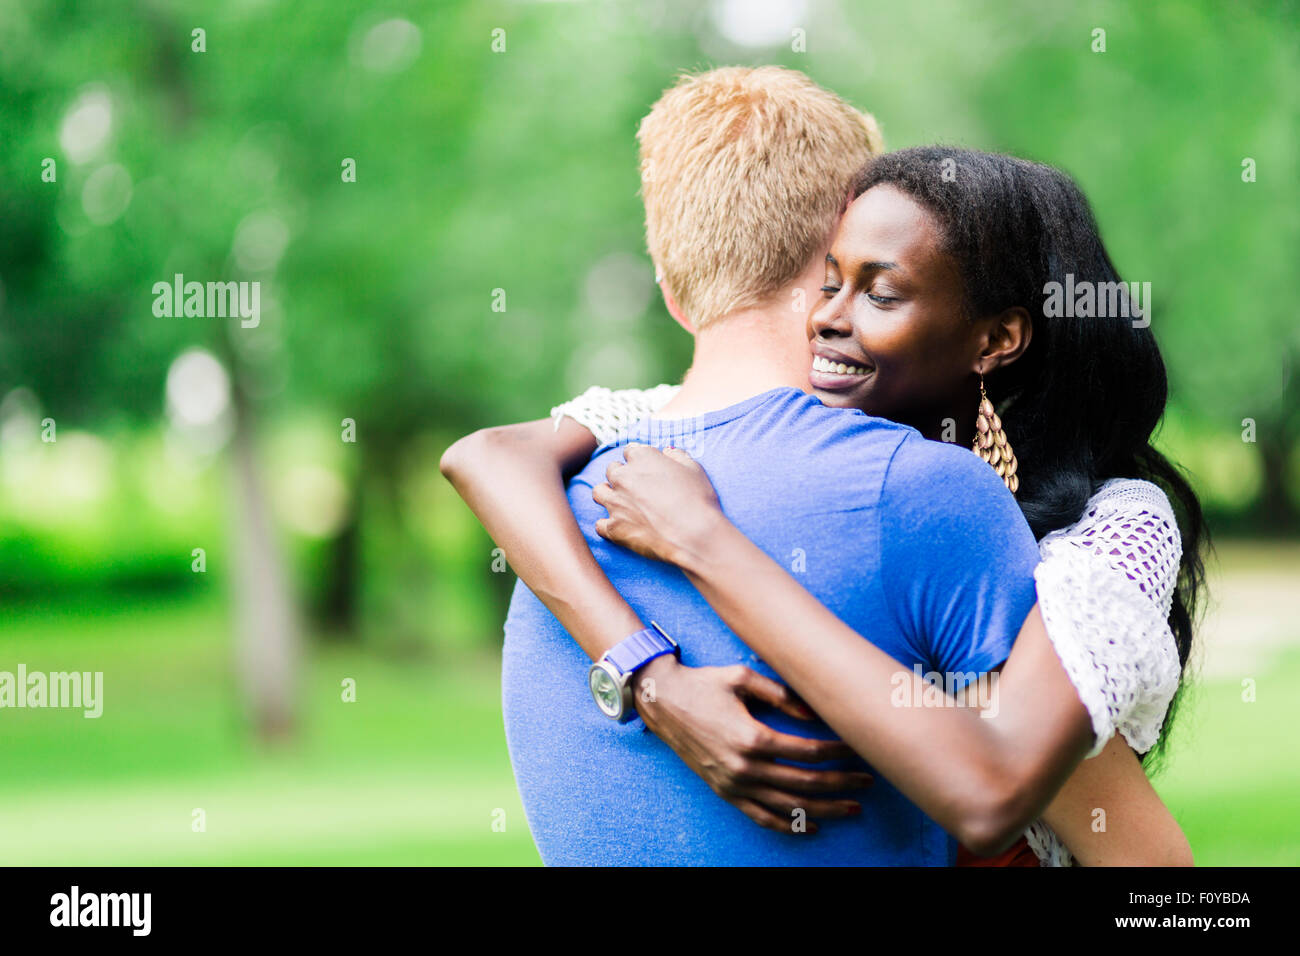 Couple in love hugging peacefully outdoors and being truly happy. Feeling of security and serenity - Stock Image